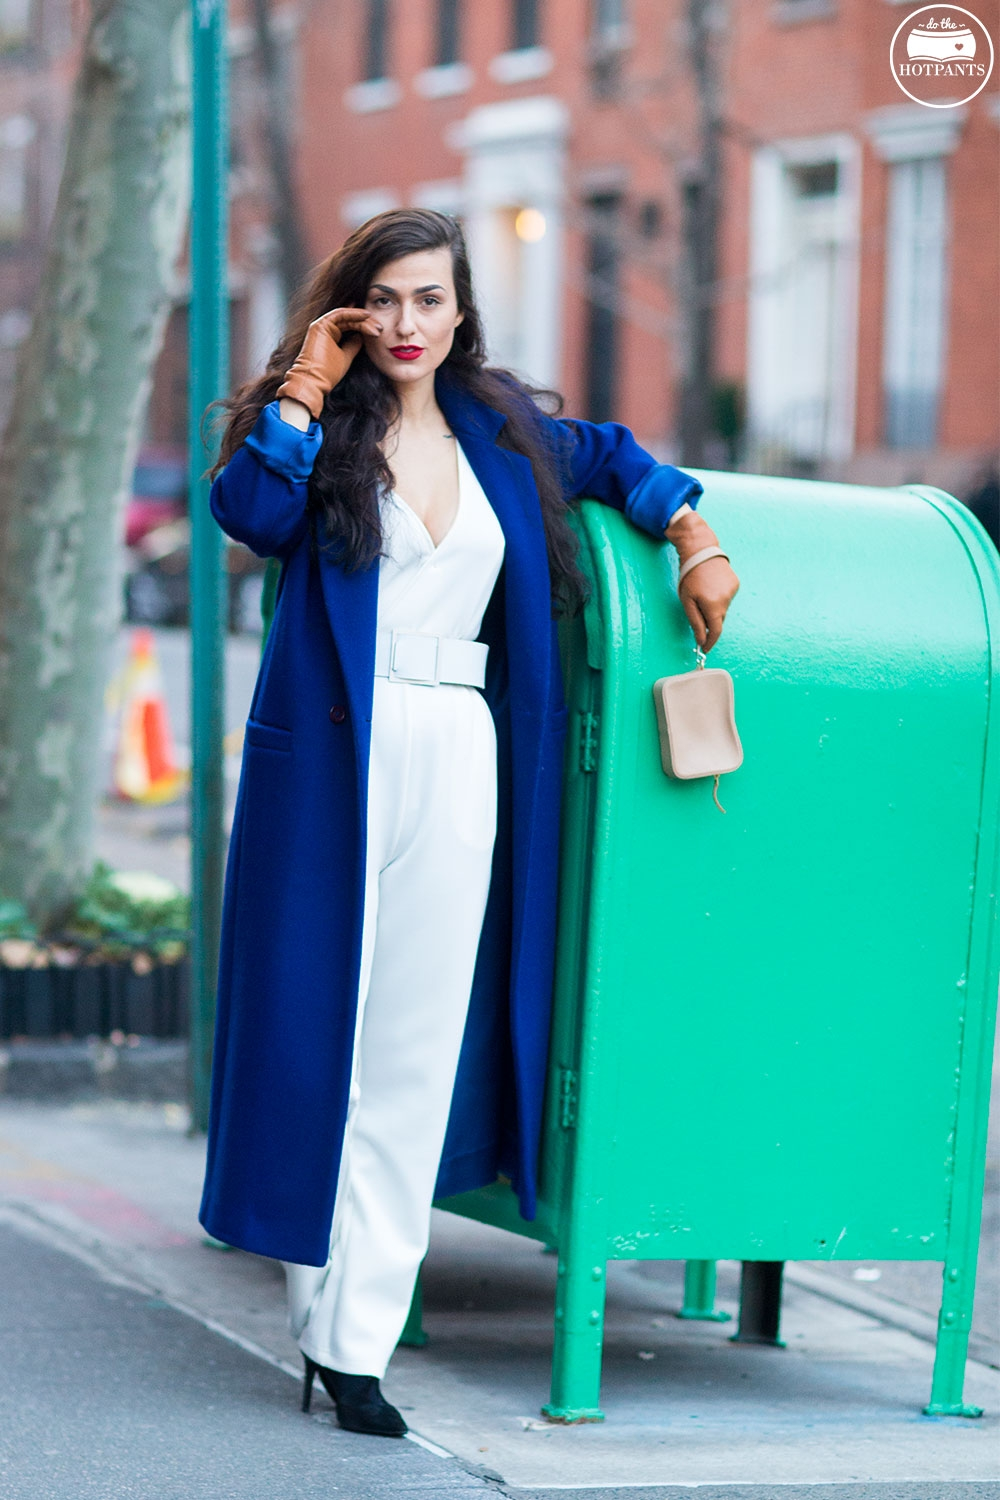 Do The Hotpants Dana Suchow White Jumpsuit Navu Blue Peacoat Trench Coat Jacket Red Lipstick Long Hair Woman MJJ_0001